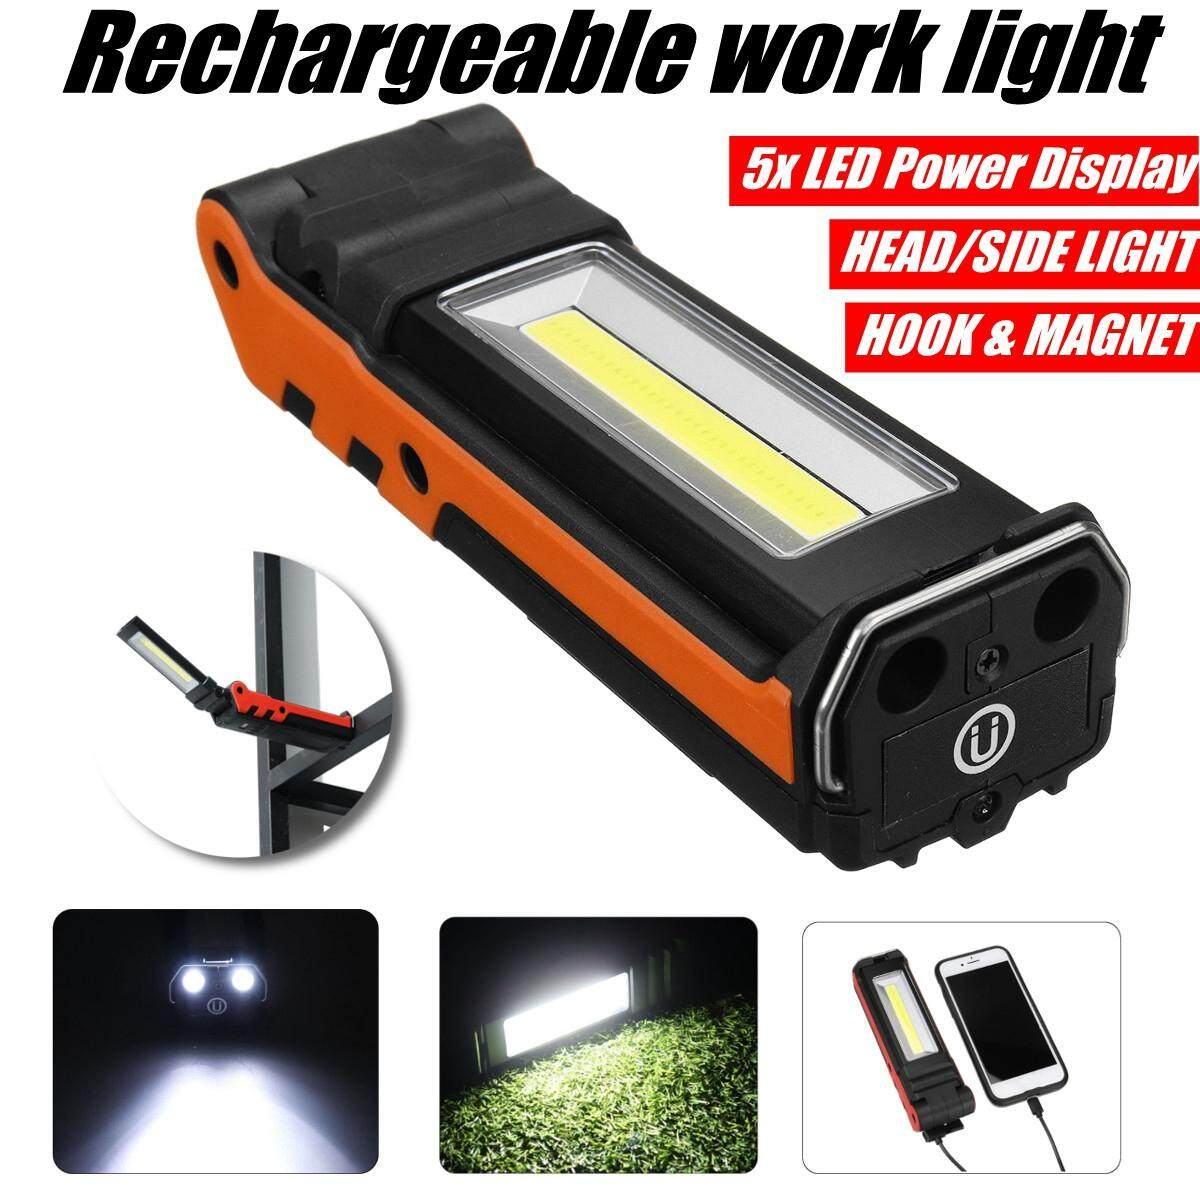 【free Shipping + Flash Deal】2led+cob 400lm Usb Rechargeable Foldable Car Maintenance Light Work Light Led Flashlight 2*18650 By Freebang.